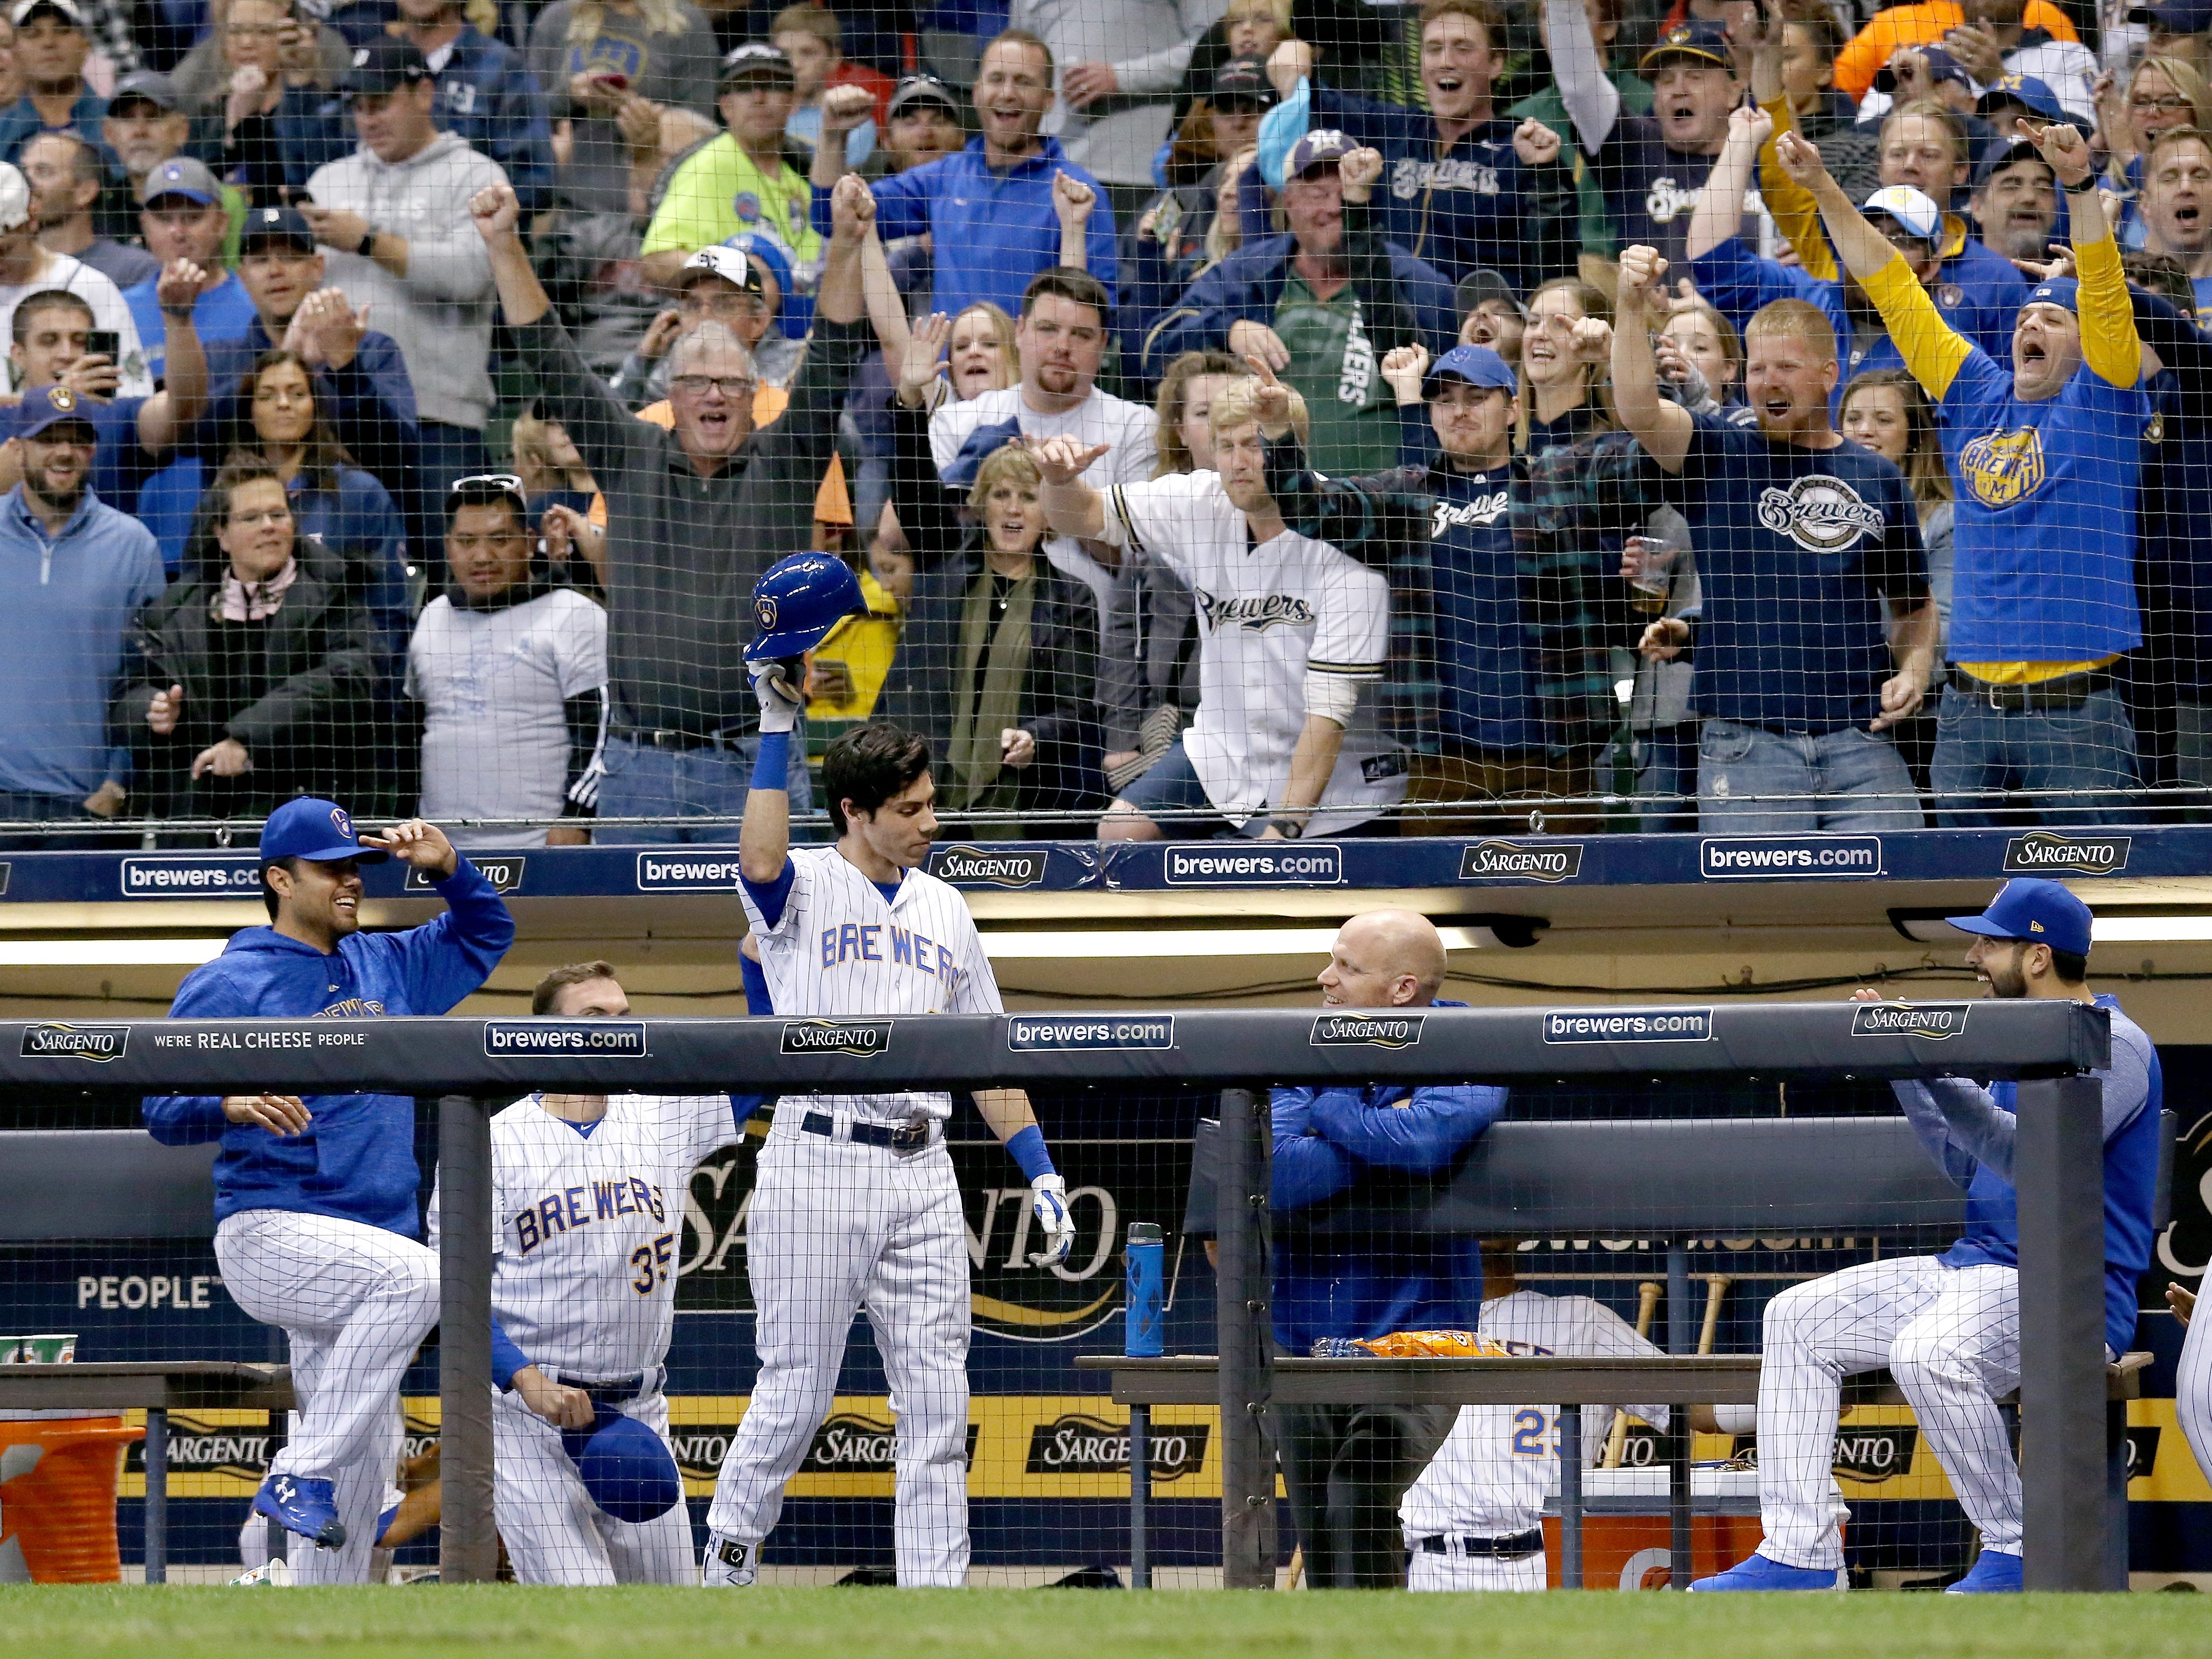 Christian Yelich of the Milwaukee Brewers takes a curtain call after hitting a home run in the seventh inning against the Detroit Tigers at Miller Park on Sept. 29, 2018 in Milwaukee.